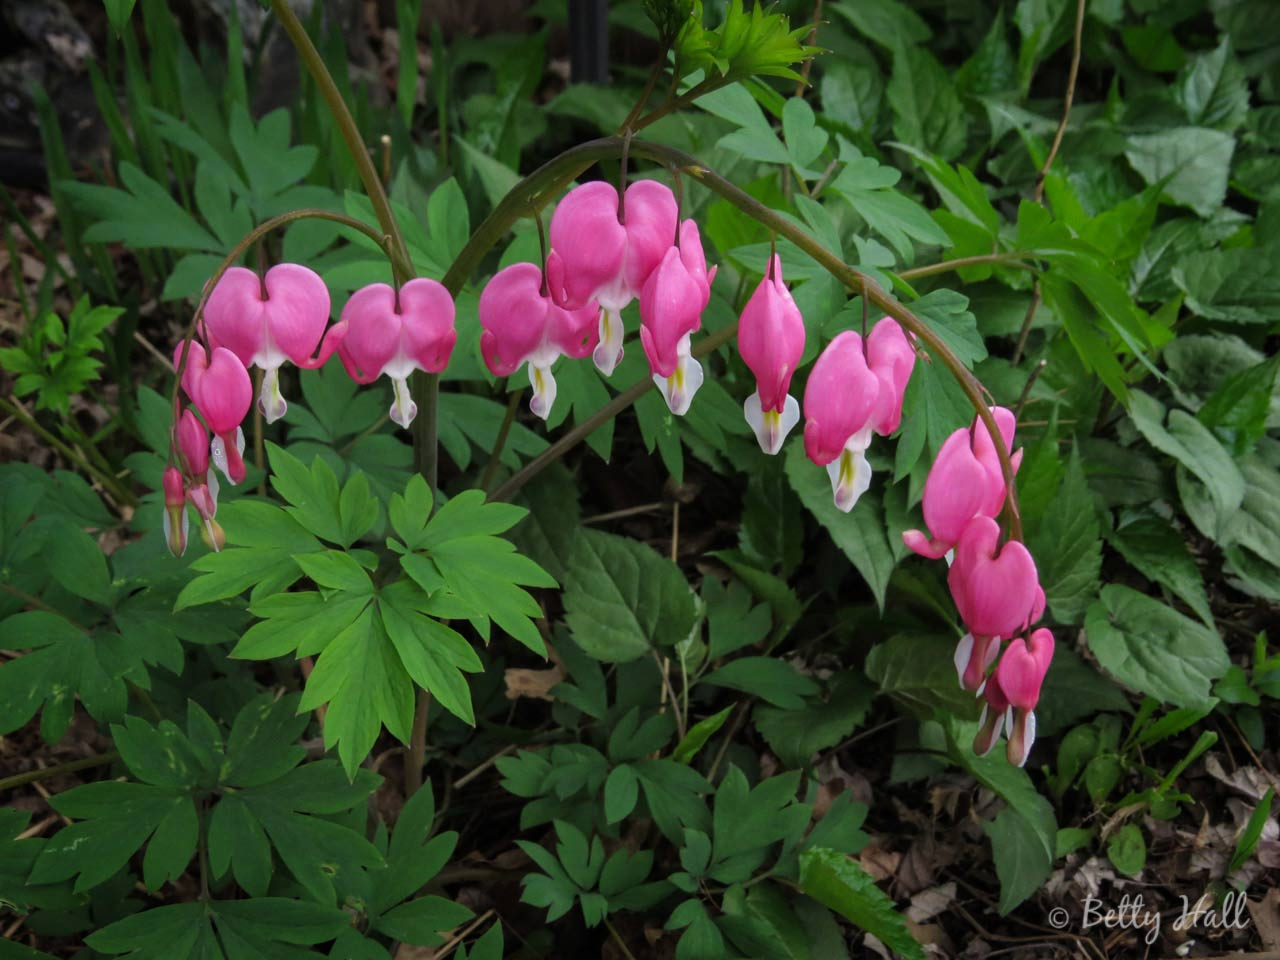 Non-native Bleeding Heart flowers